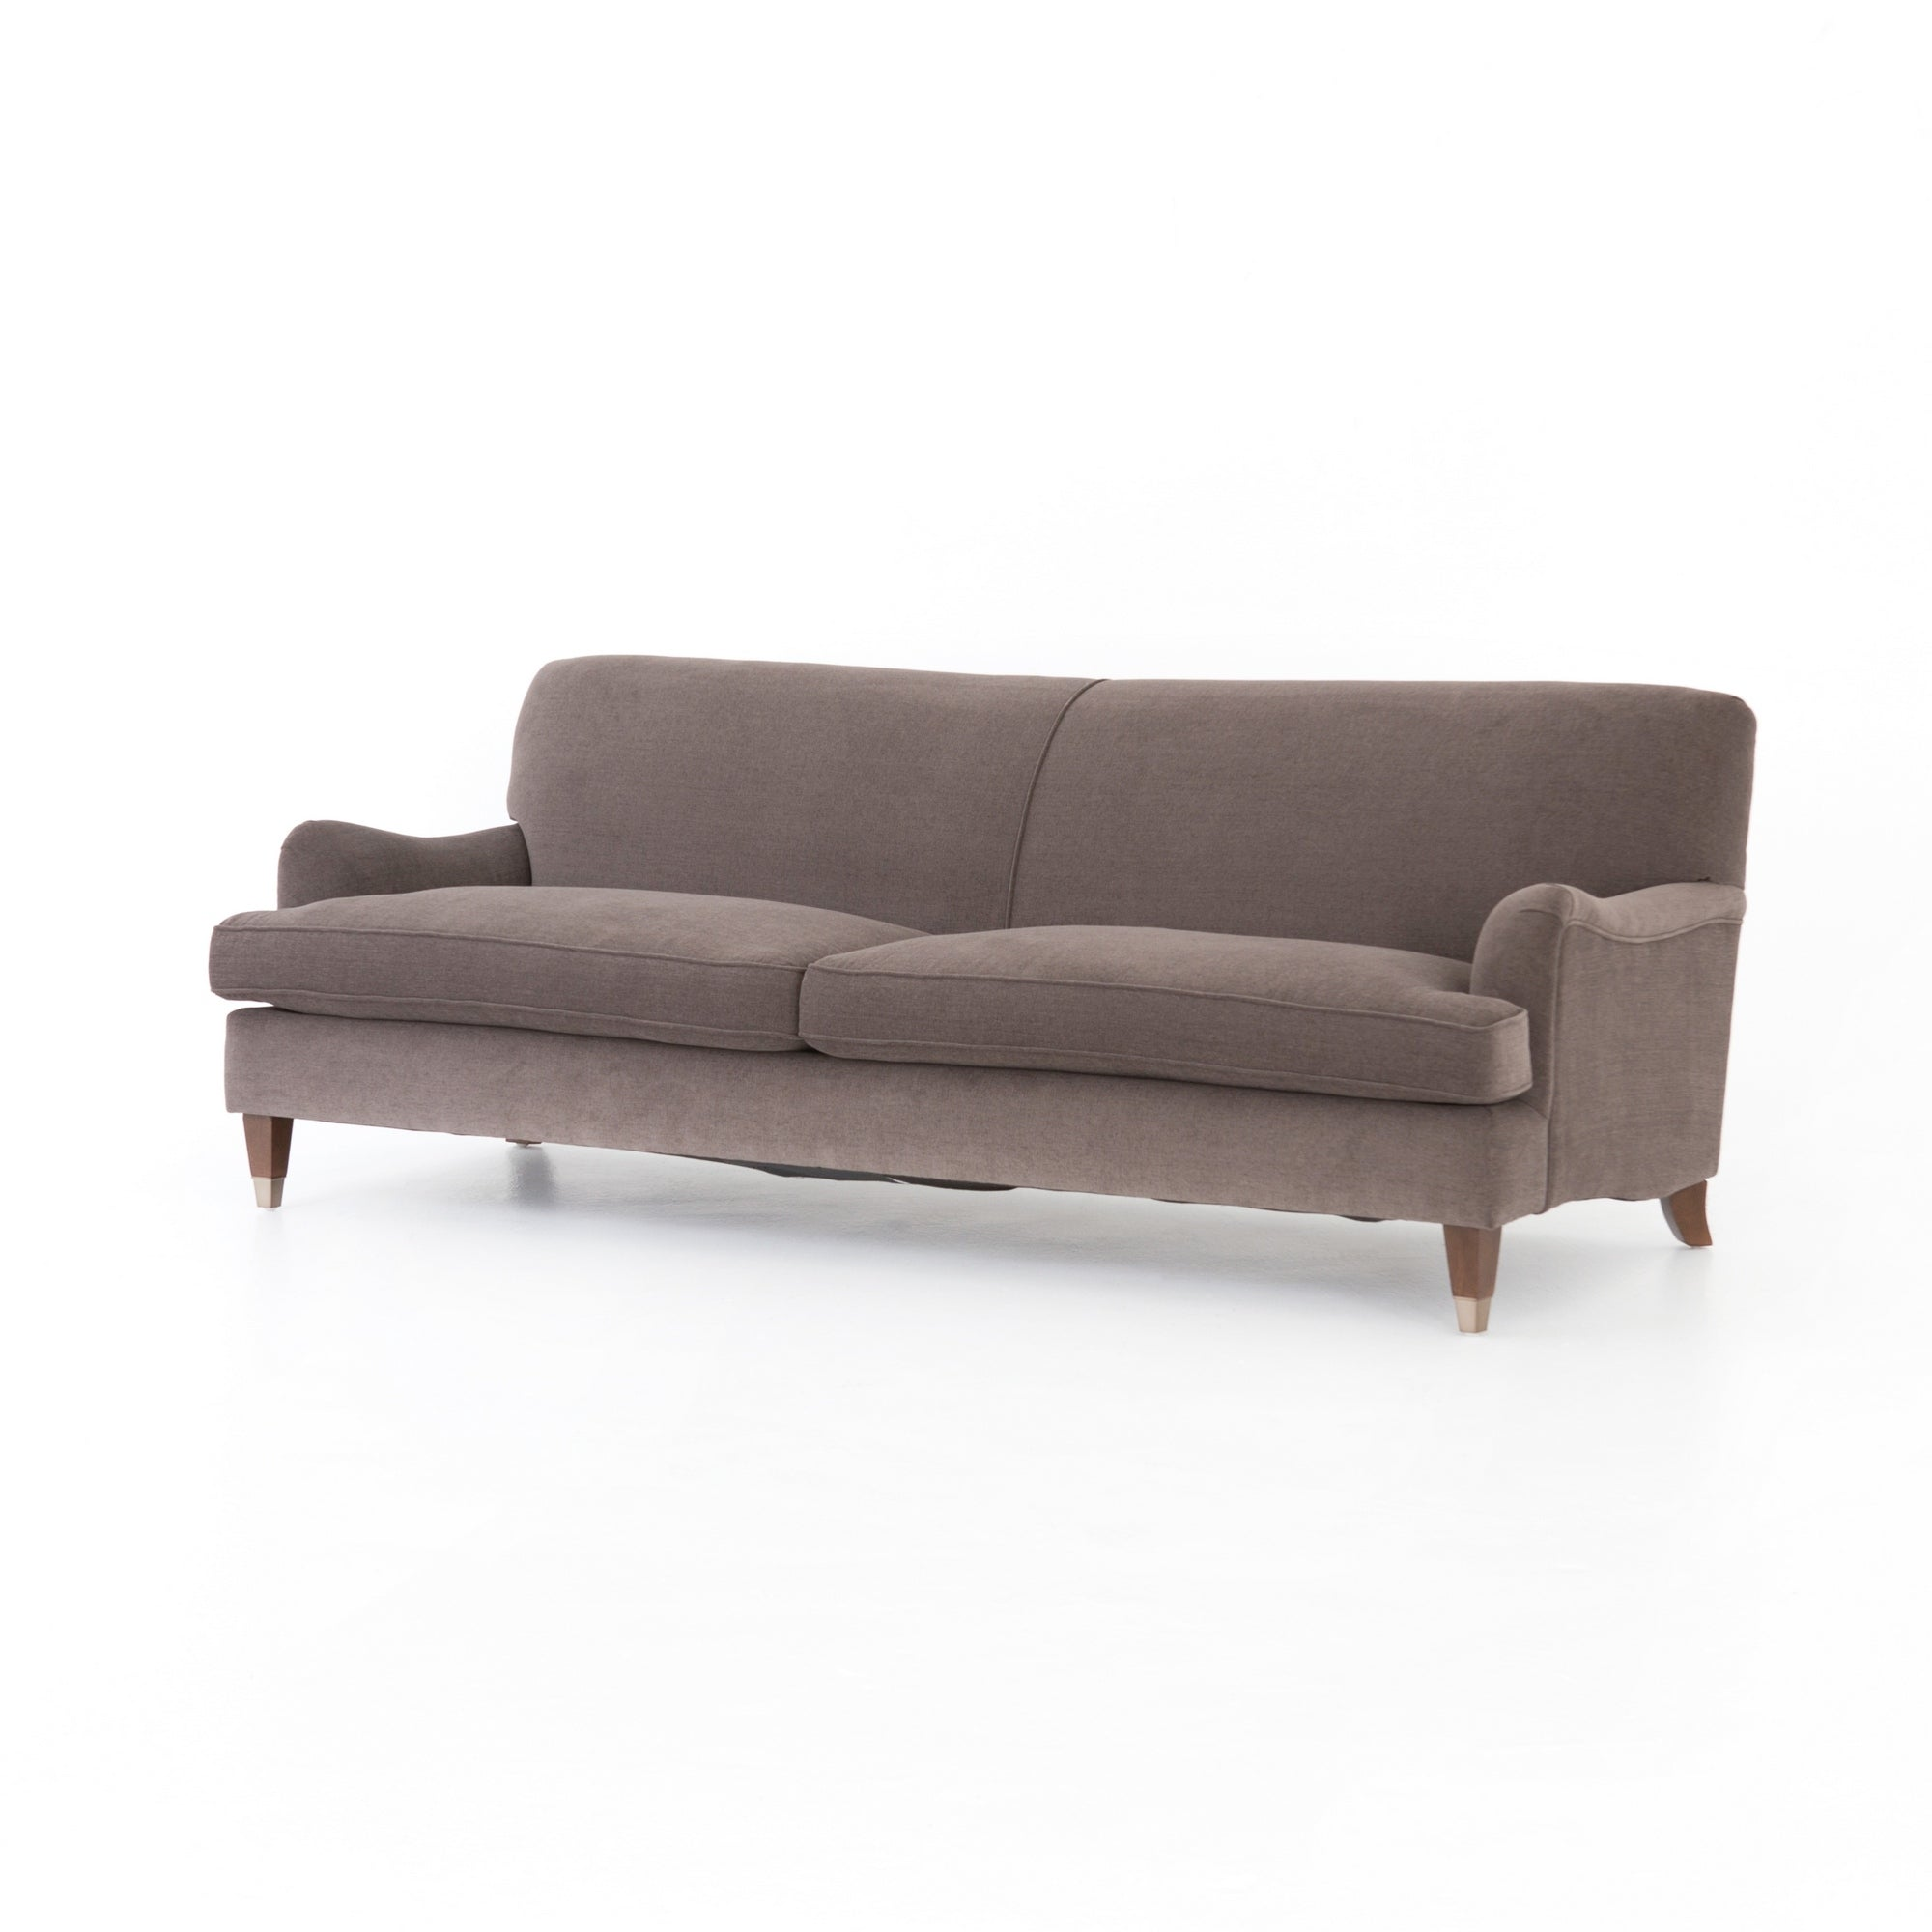 Four Hands Leighton Sofa at Downtown Decor in Las Vegas